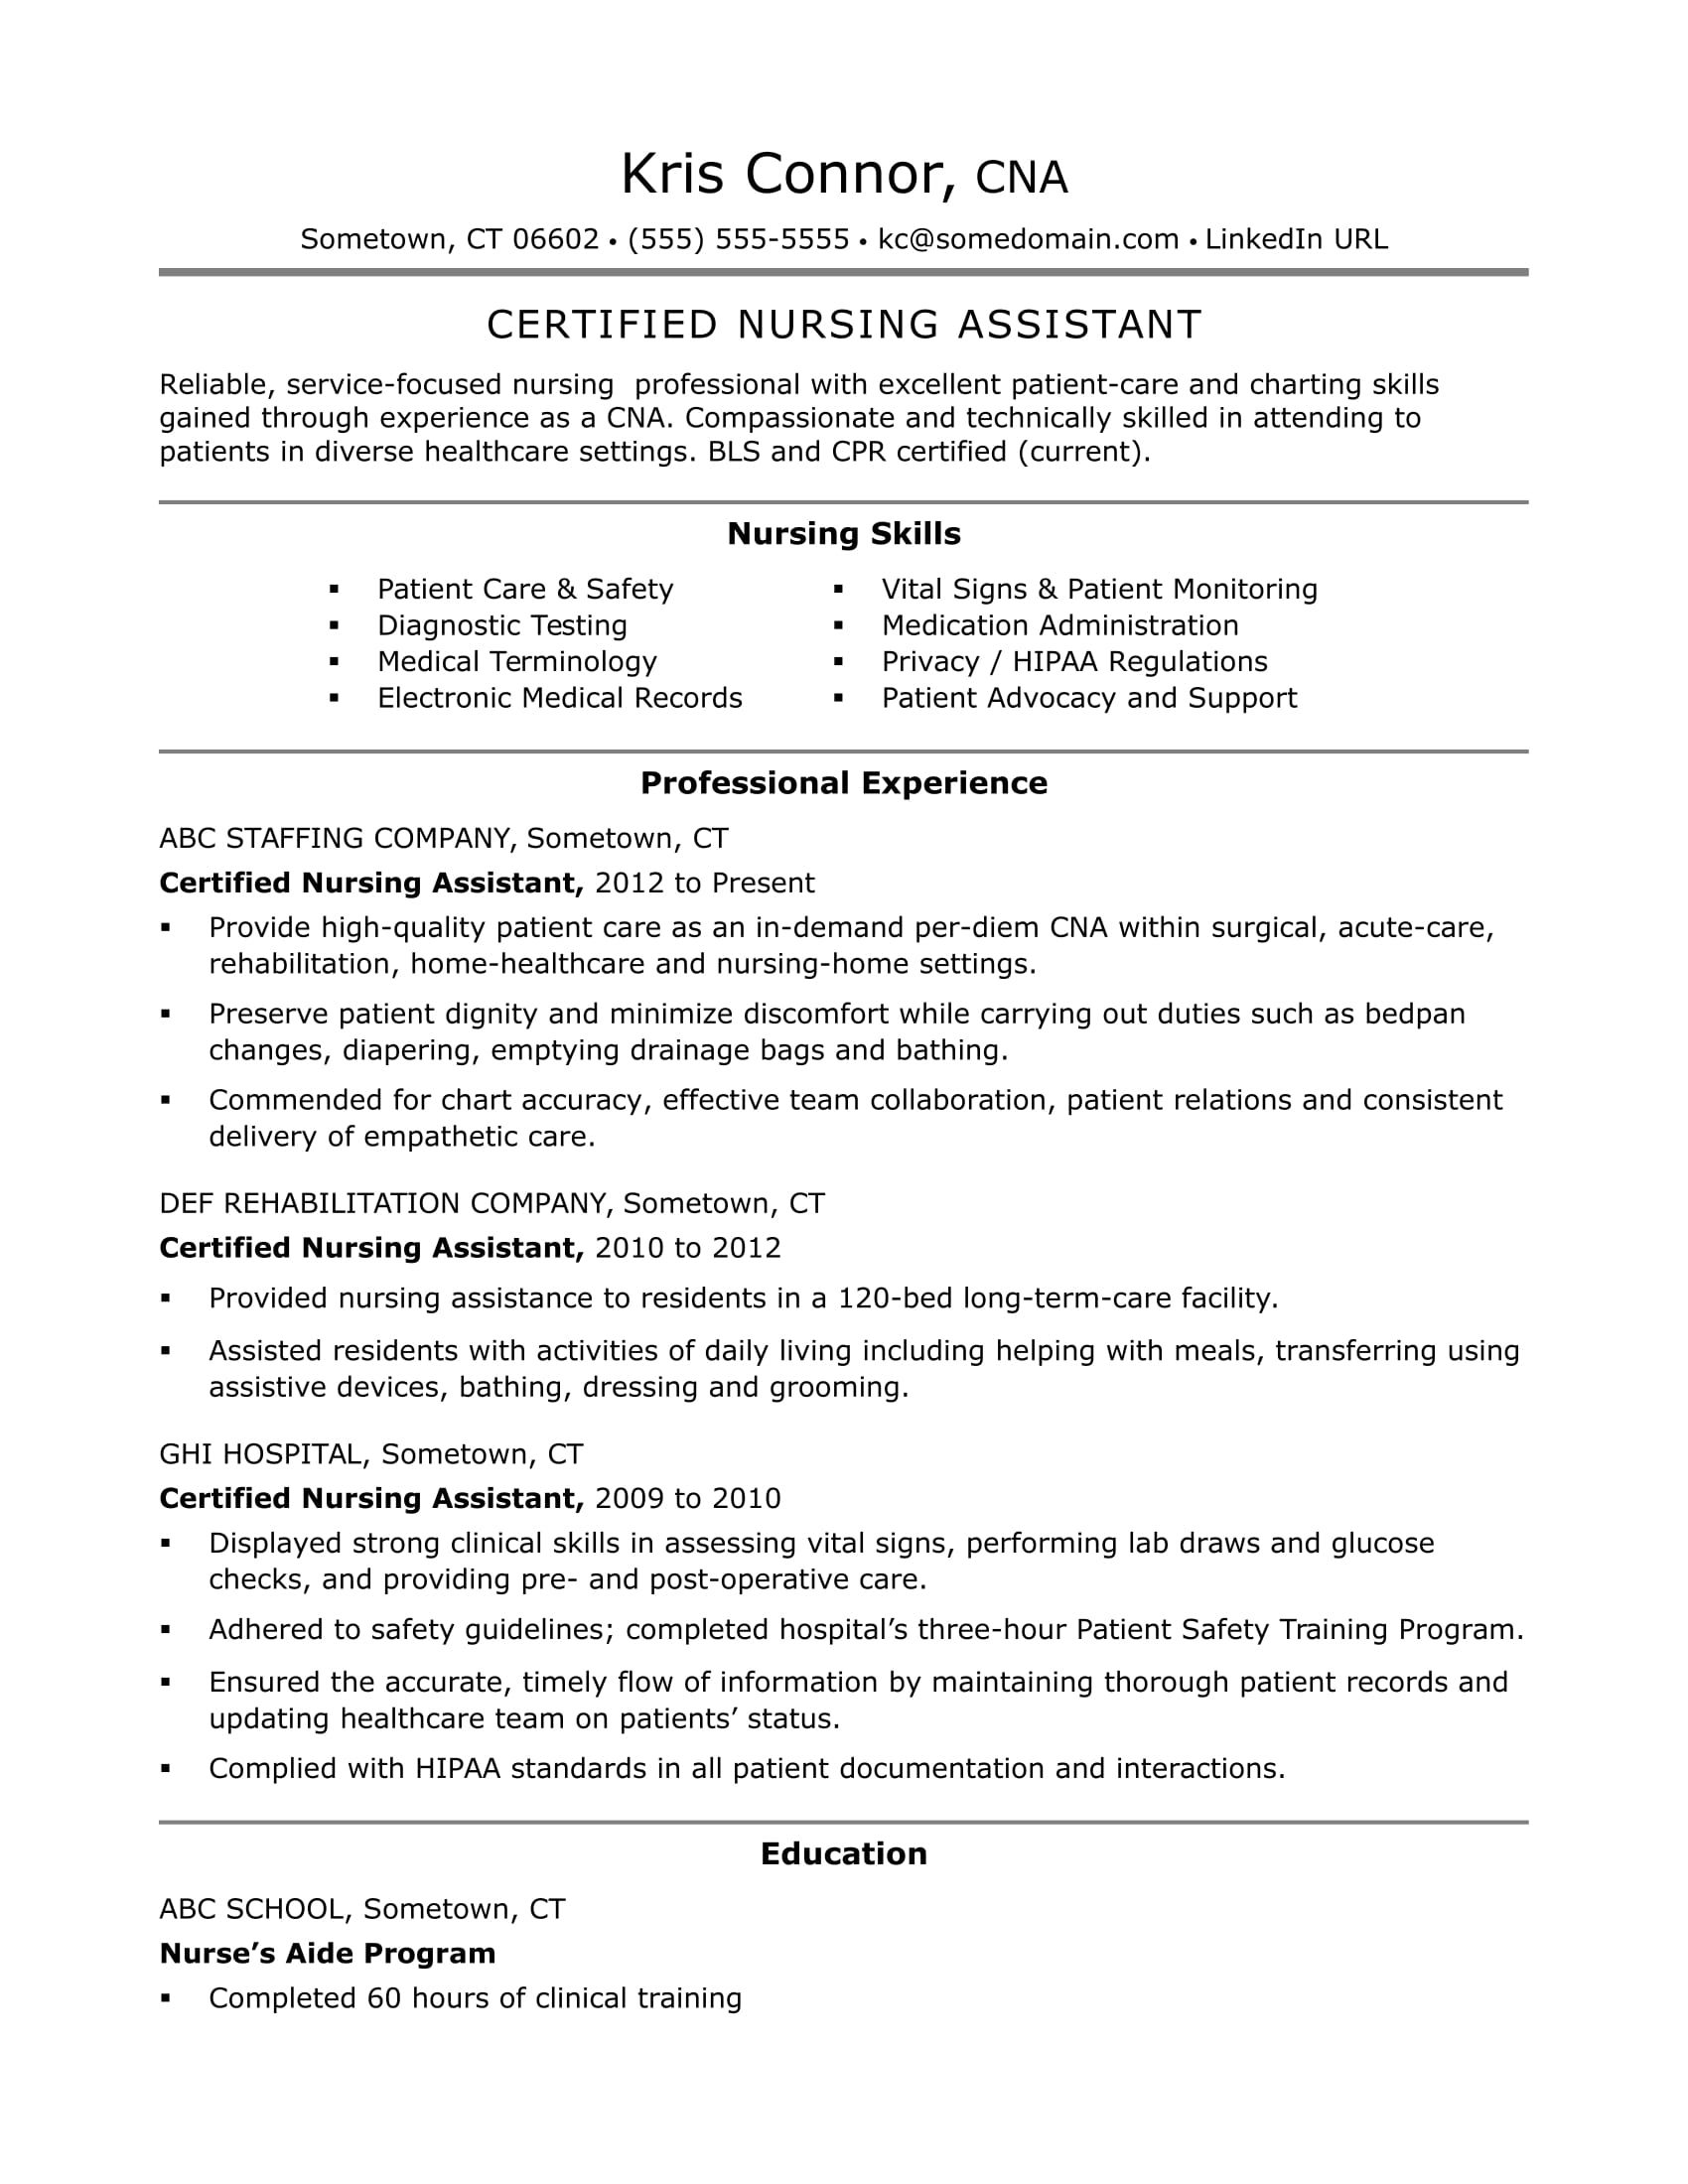 resume Examples Of Cna Resumes cna resume examples skills for cnas monster com example